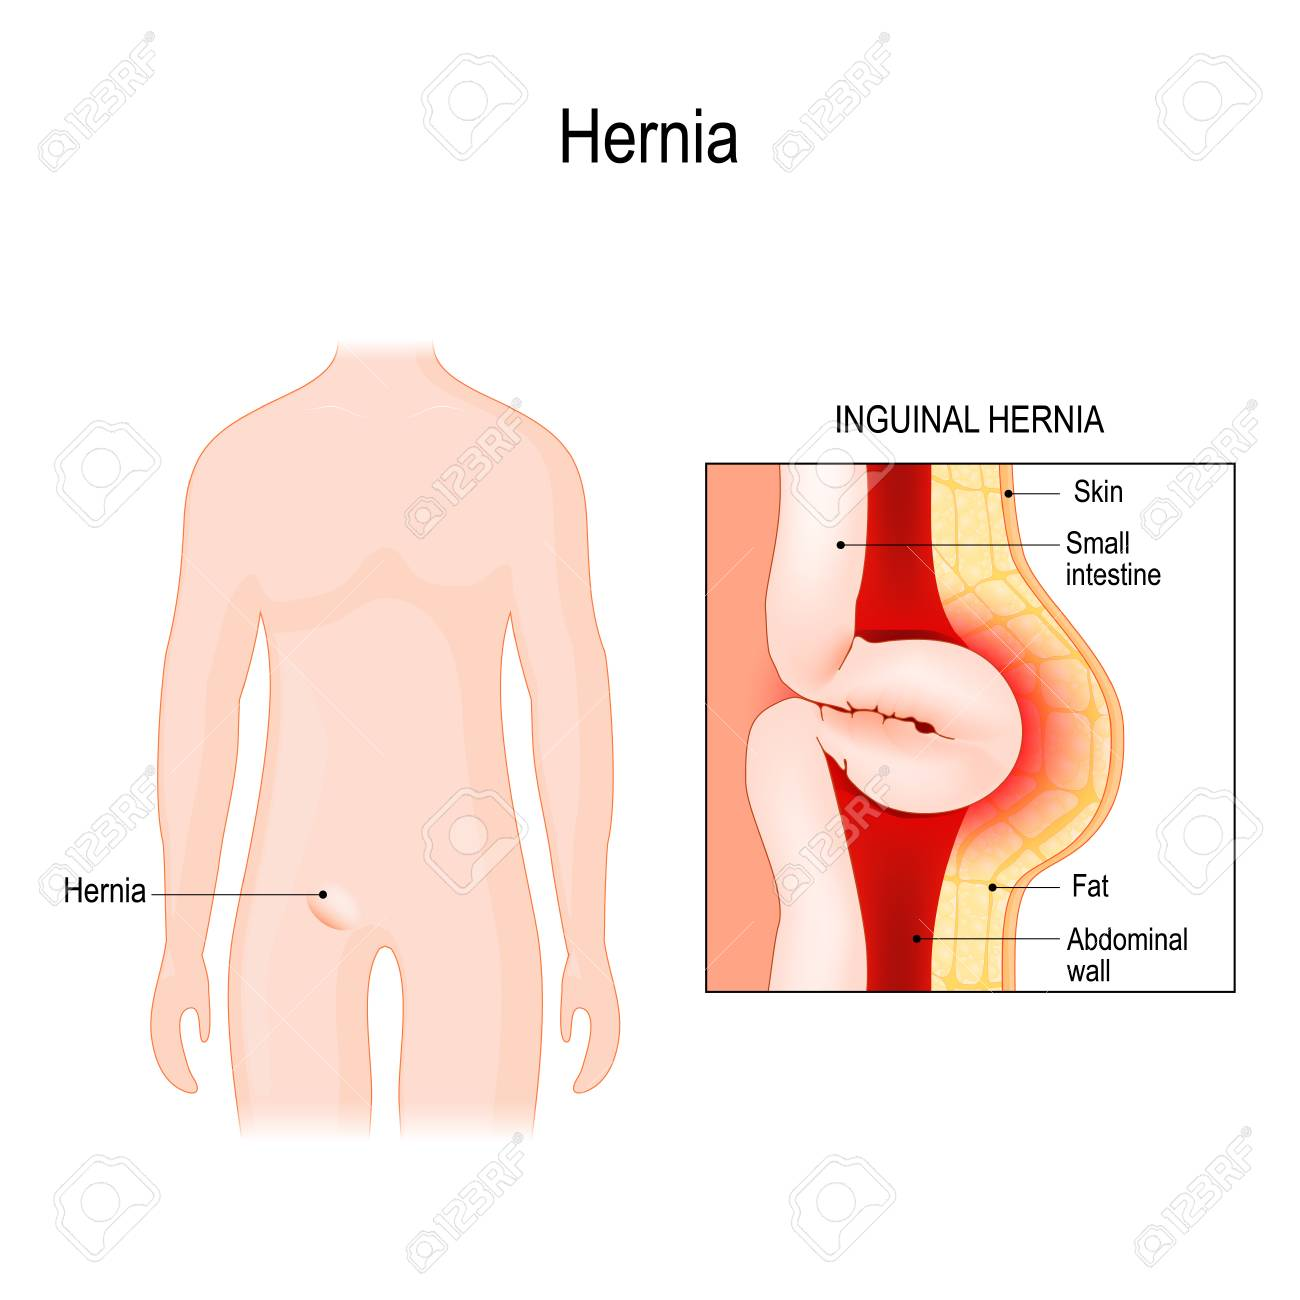 Inguinal Hernia  bowel exit through the wall of the abdomen cavity